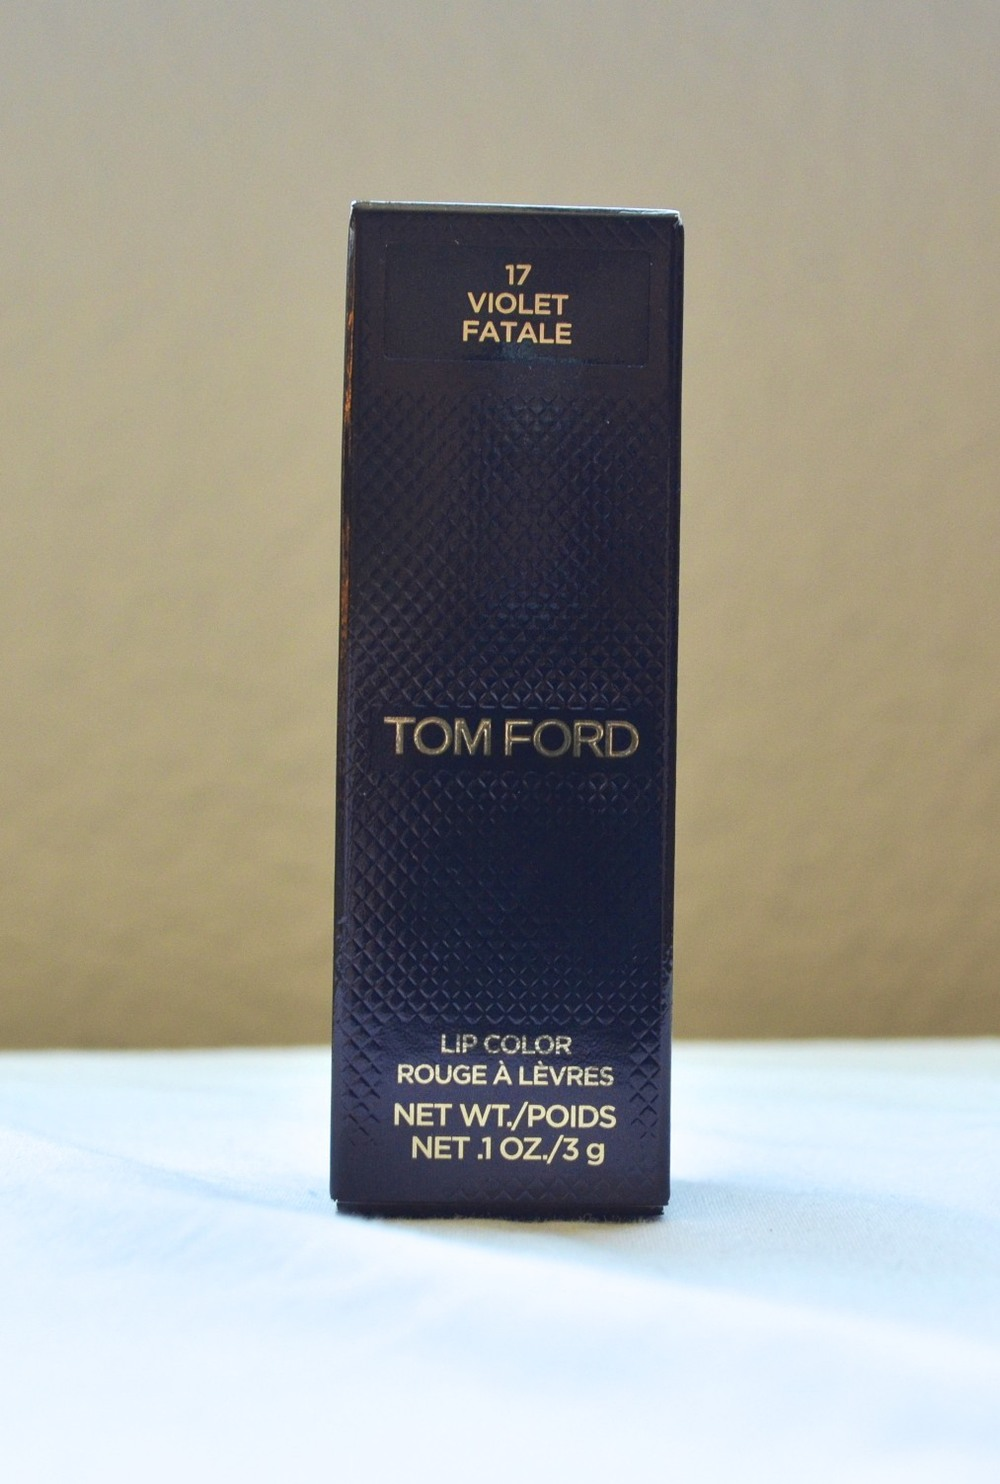 tom ford violet fatale